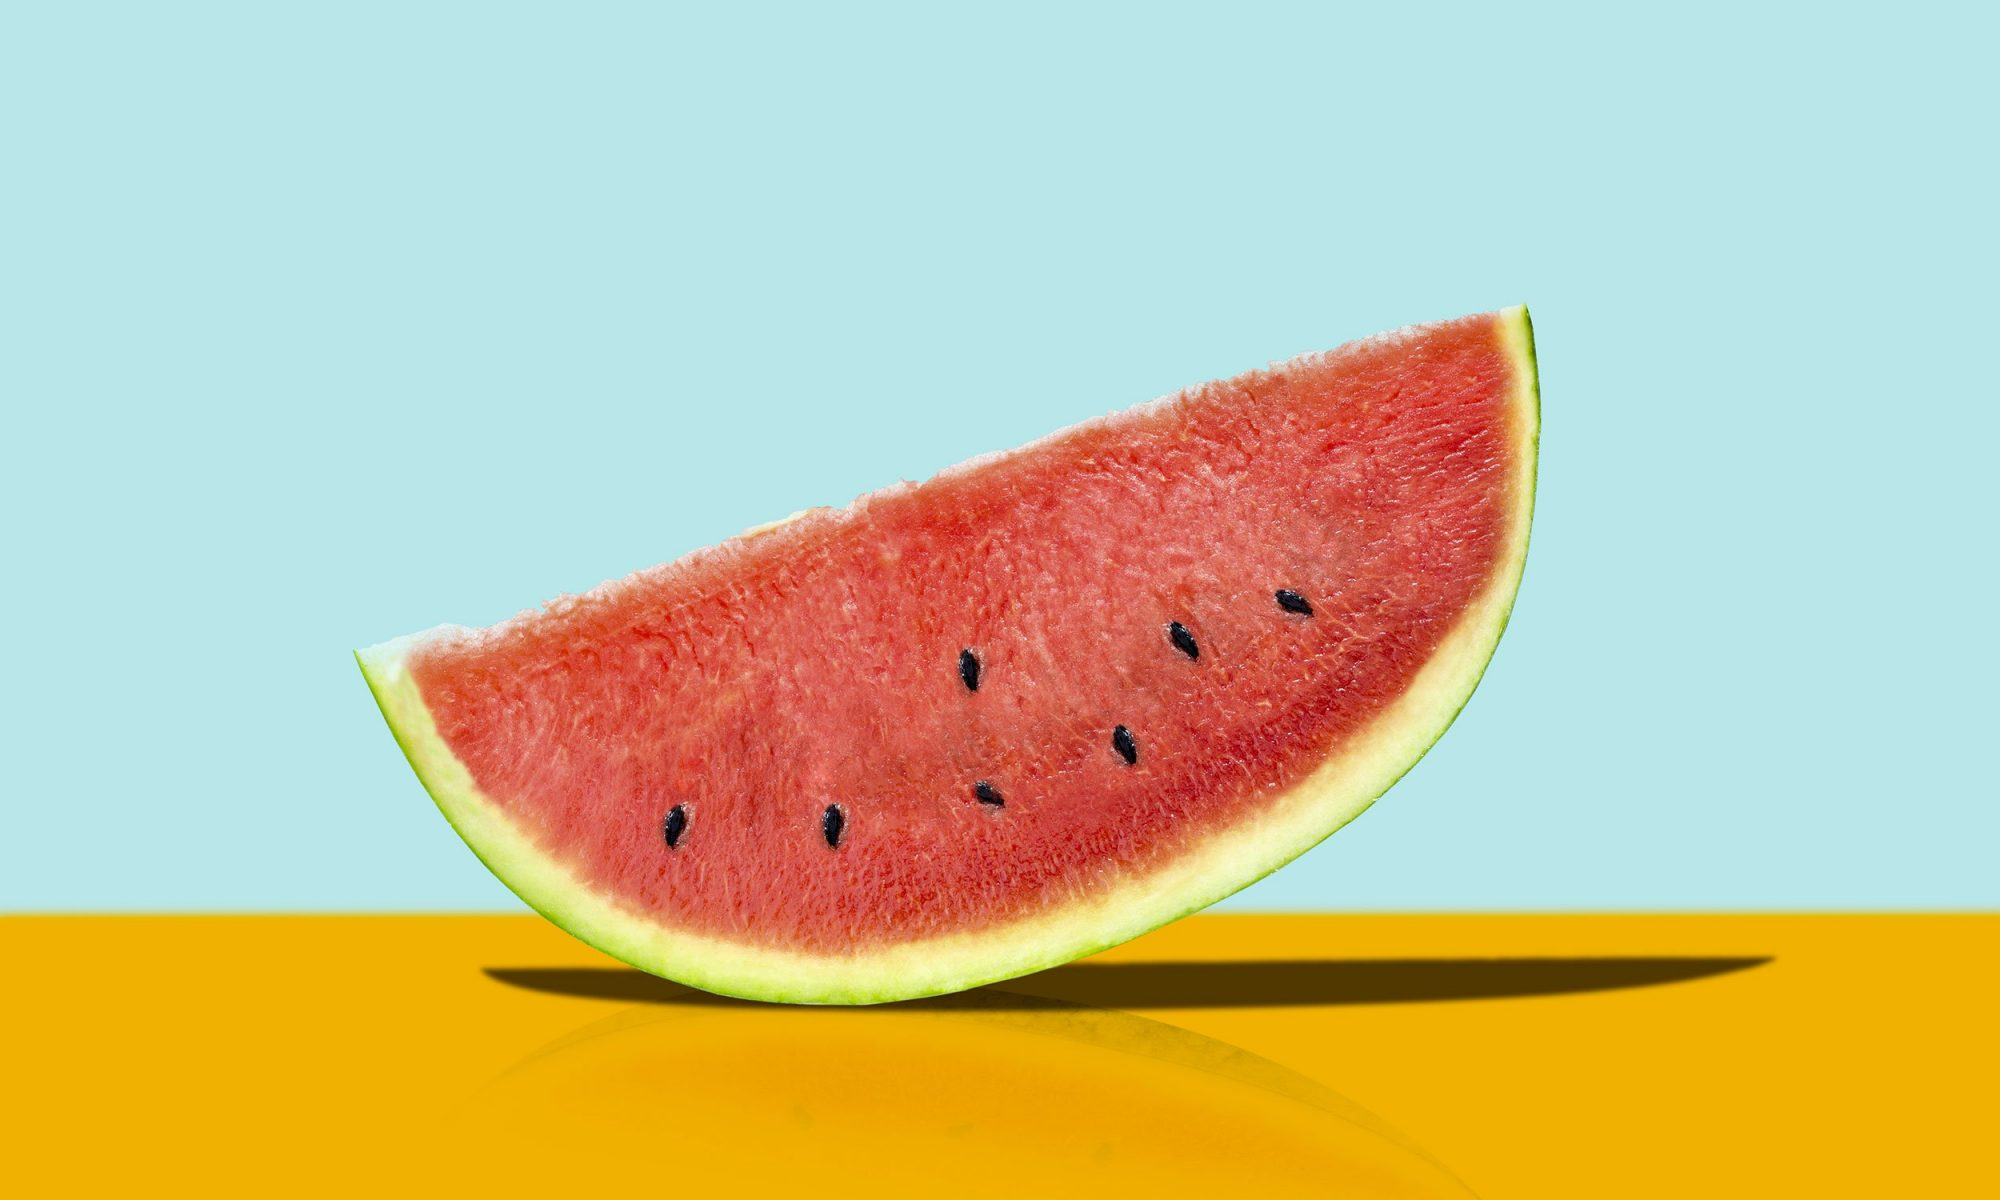 How to Cut a Watermelon Without a Knife